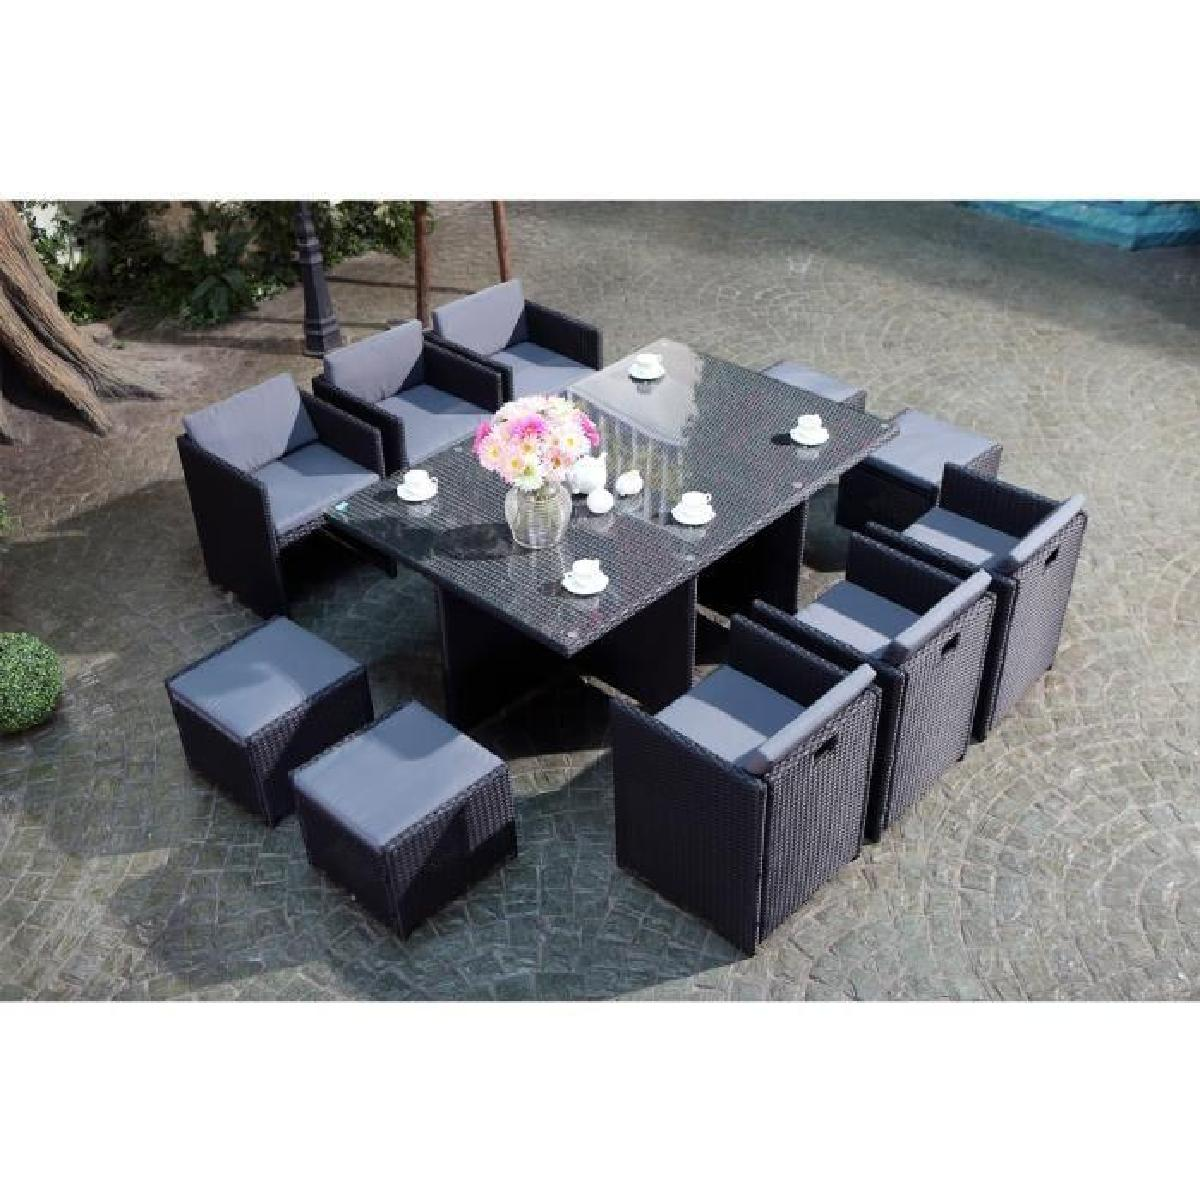 achat salon de jardin pas cher 15 id es de d coration. Black Bedroom Furniture Sets. Home Design Ideas